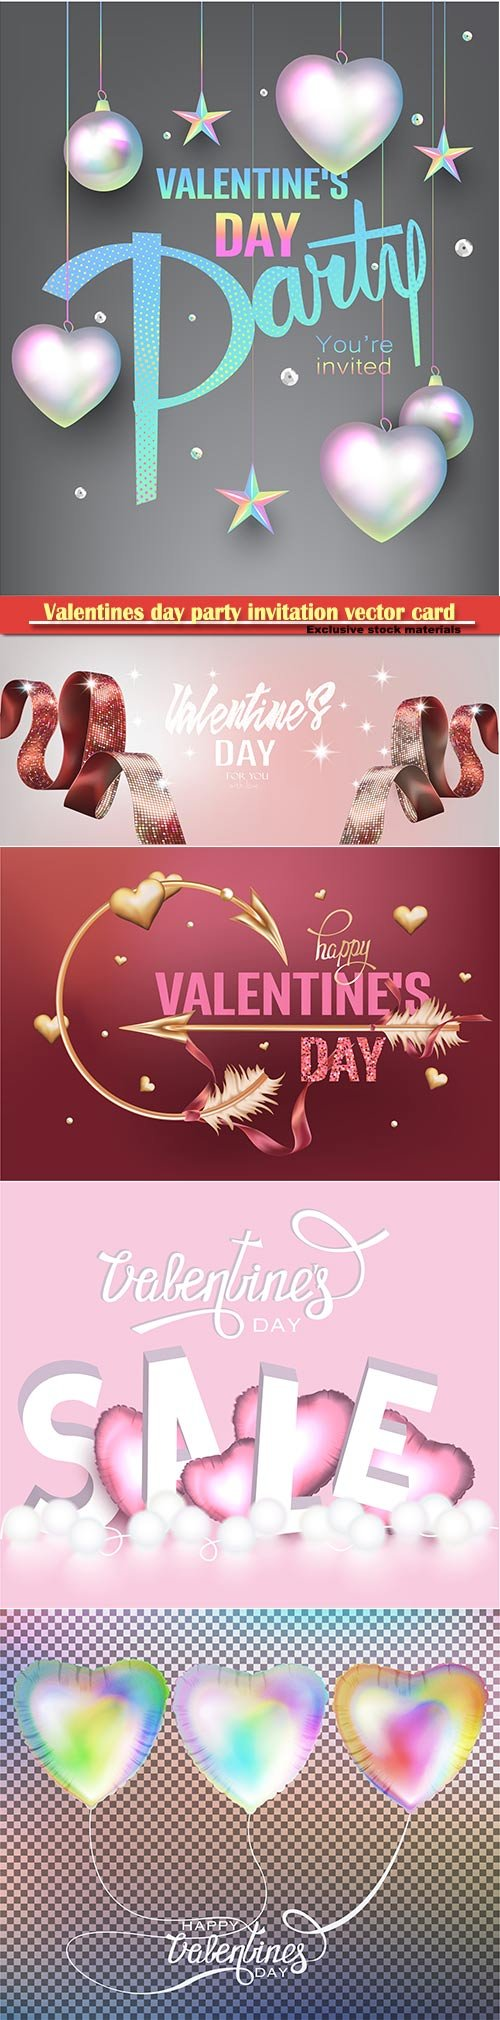 Valentines day party invitation vector card # 8